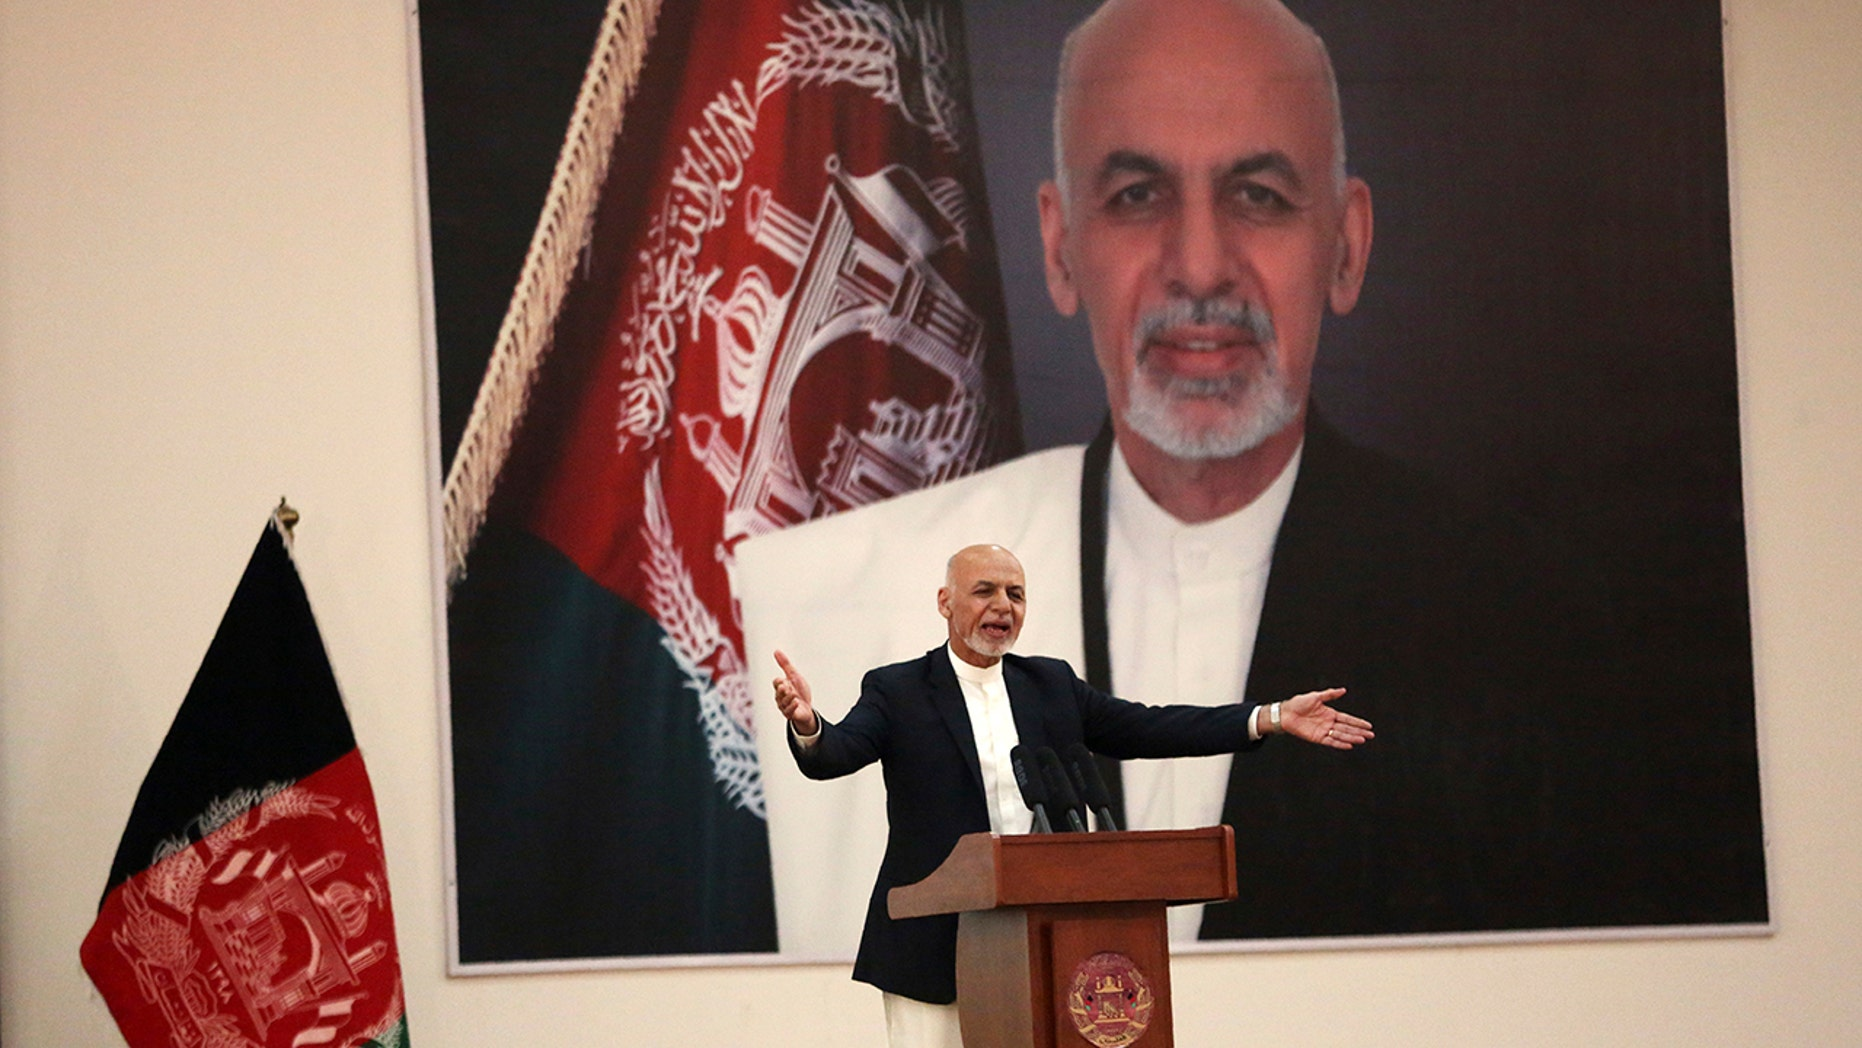 Westlake Legal Group Afghan-President-Ashraf-Ghani Bombing kills 24 at Afghan president's rally fox-news/world/conflicts/afghanistan fnc/world fnc Associated Press article a4593ed0-ec84-5ac5-b865-cd27e4f7d220